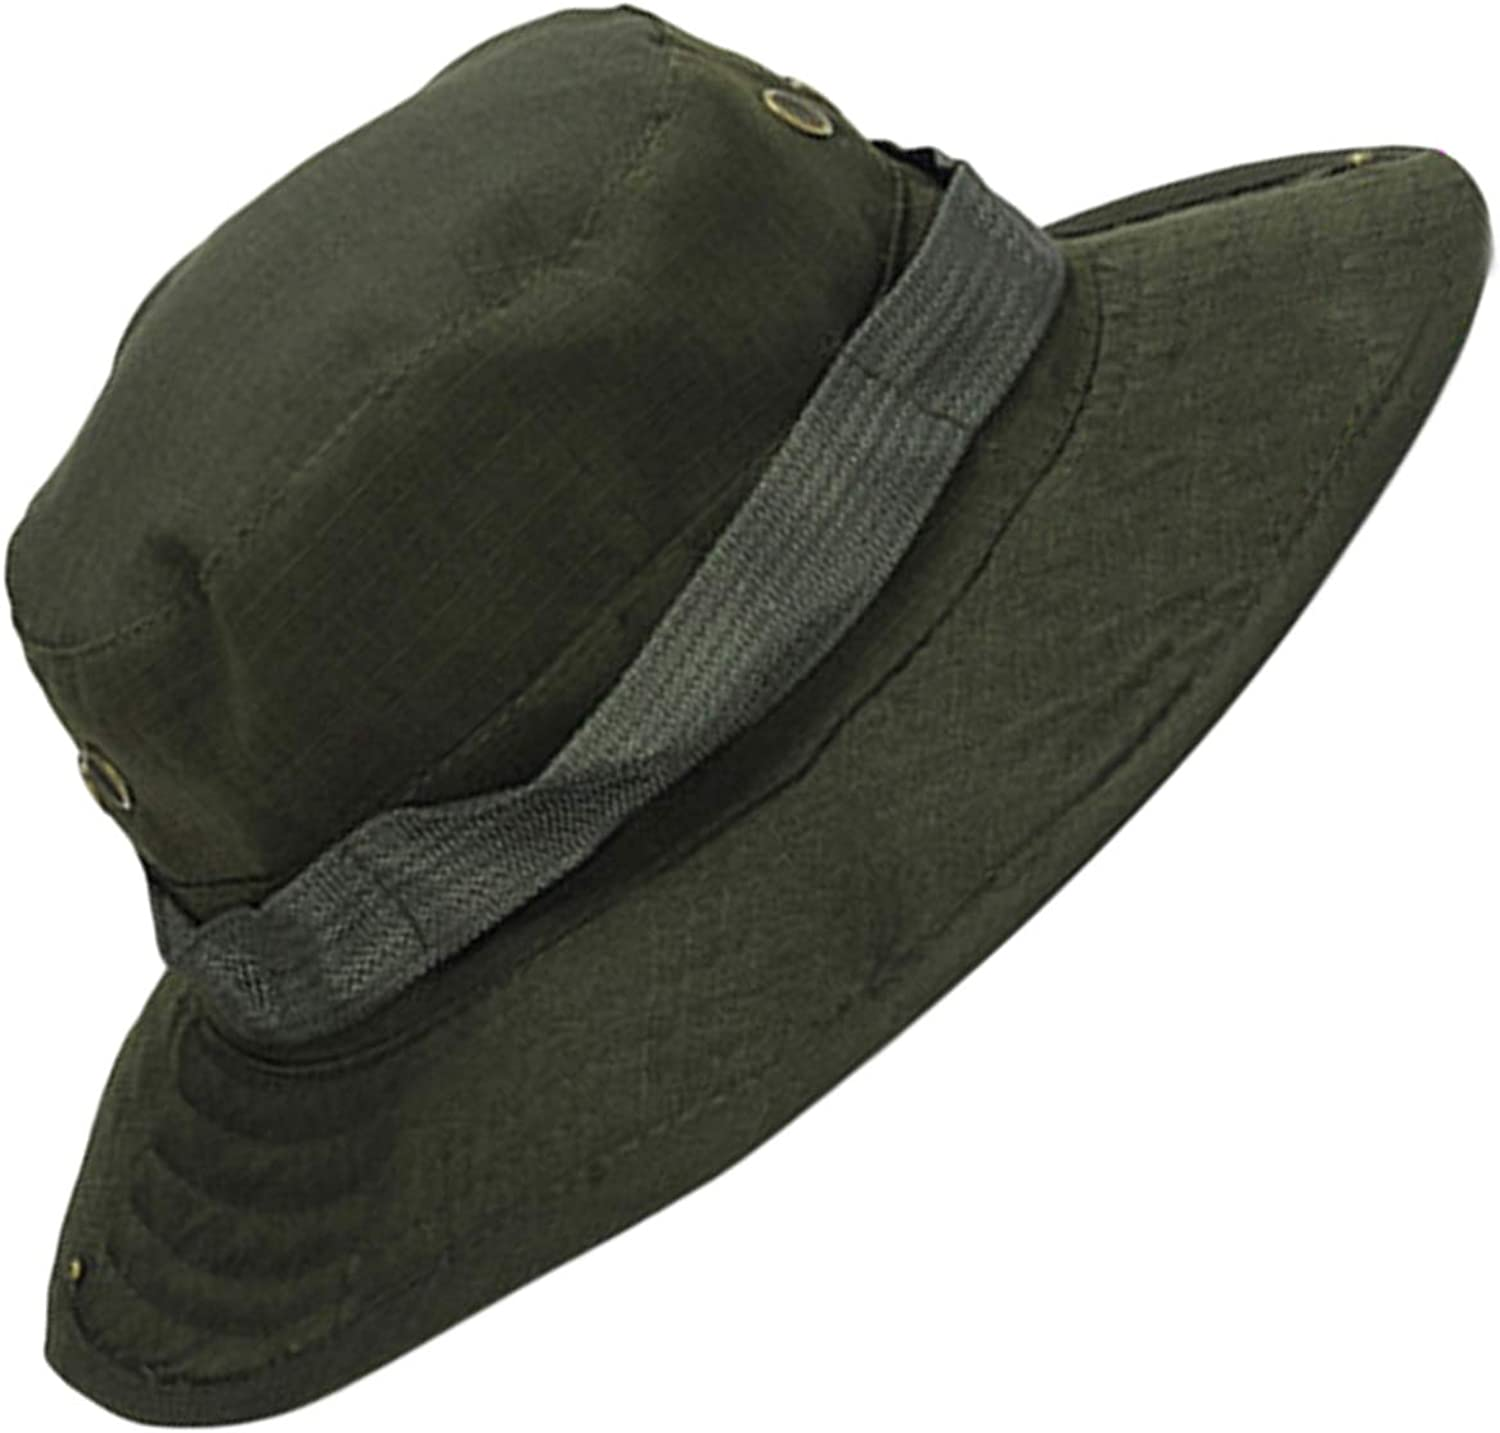 Fashion Men Women Round Boonie Hats Optional Colors Camouflage Caps Outdoor Camping Sun Hat